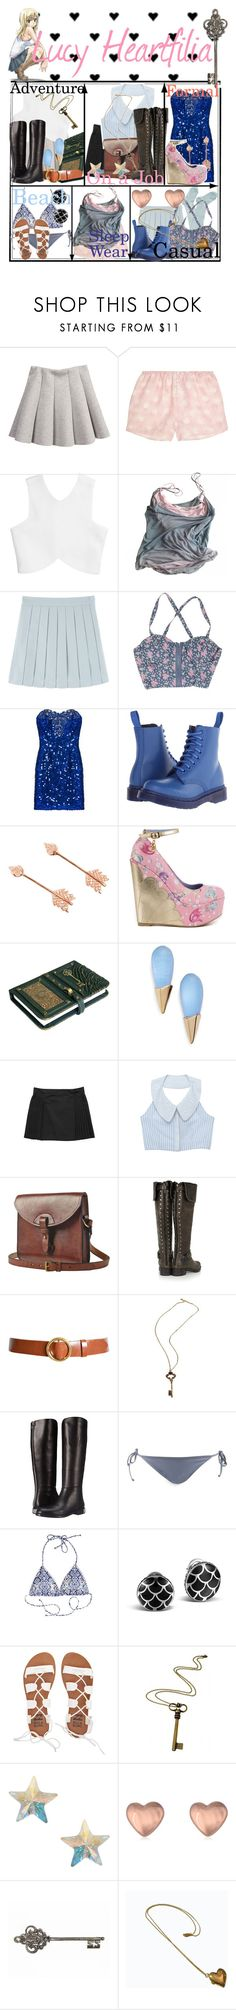 """""""Lucy Heartfilia"""" by janalunamarie23 ❤ liked on Polyvore featuring Rosamosario, Chloé, Vintage Collection, Dr. Martens, Pamela Love, Iron Fist, Alexis Bittar, Toast, Tory Burch and Frame"""